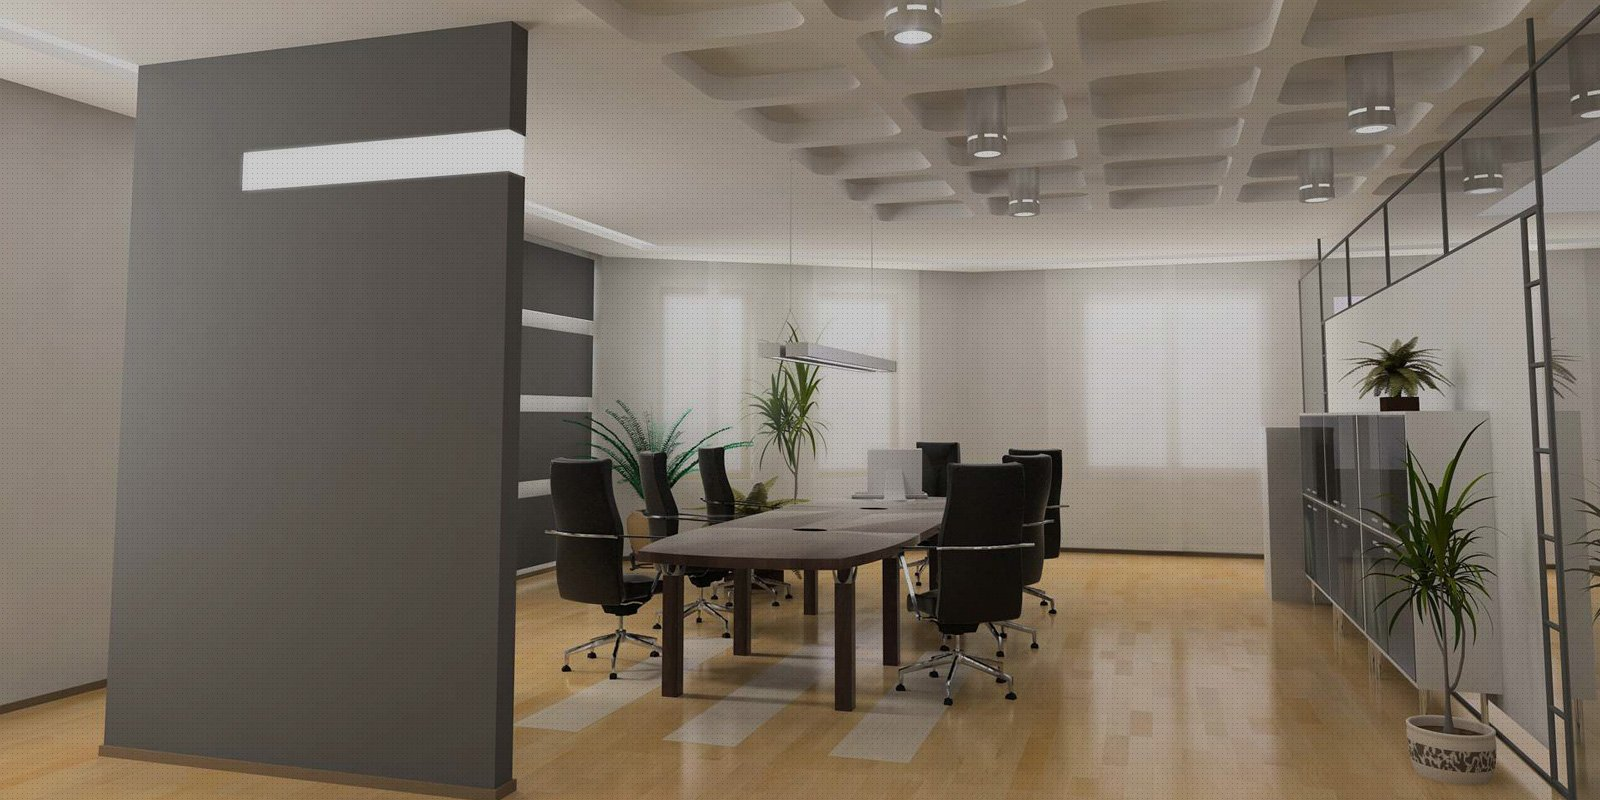 Tridiva Ergonomic Interiors Pvt. Ltd.